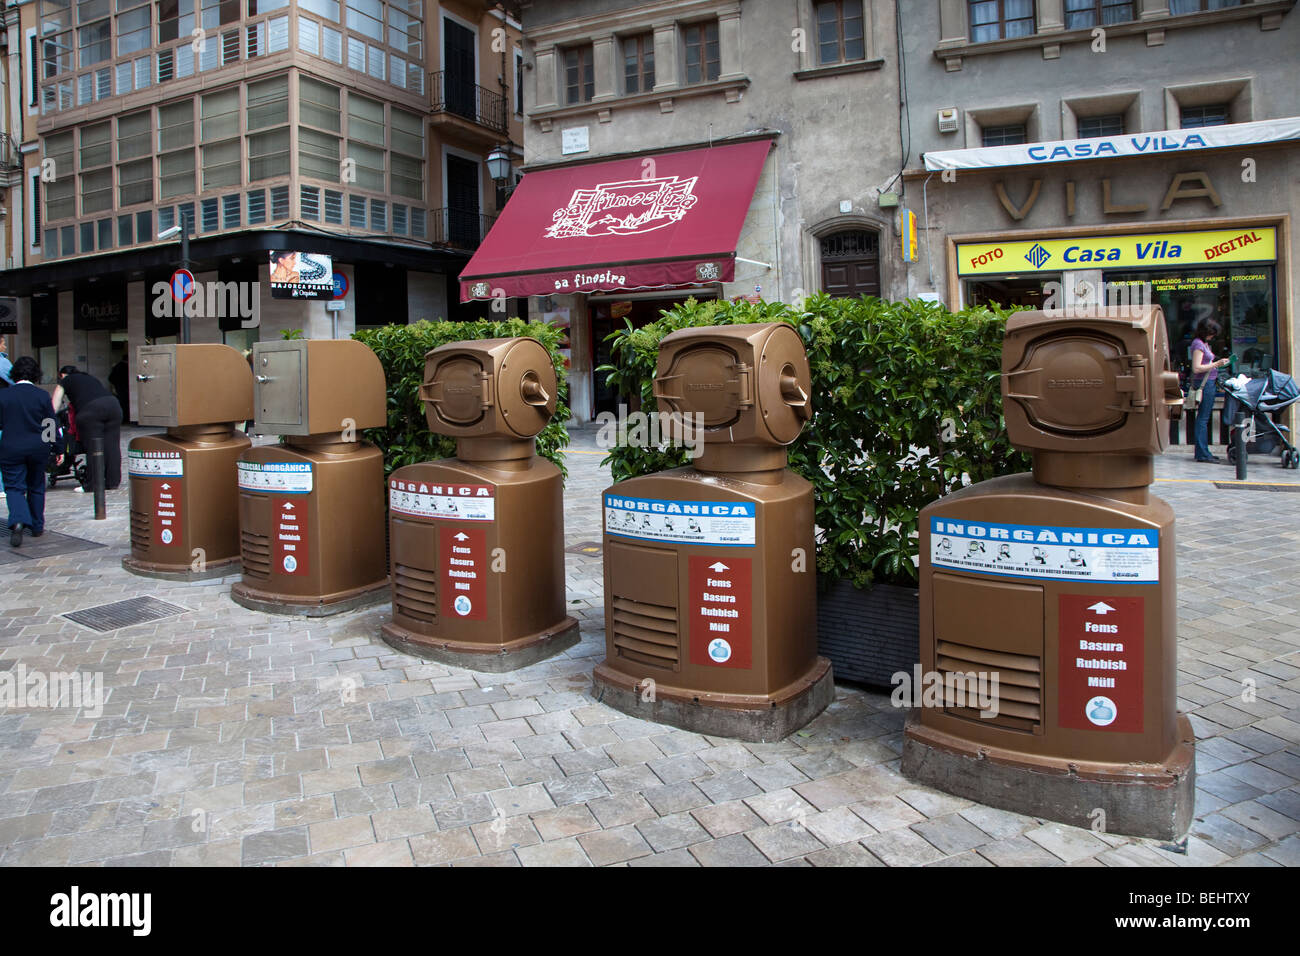 Recycling bins for organic and inorganic waste in centre of Palma Mallorca Spain - Stock Image